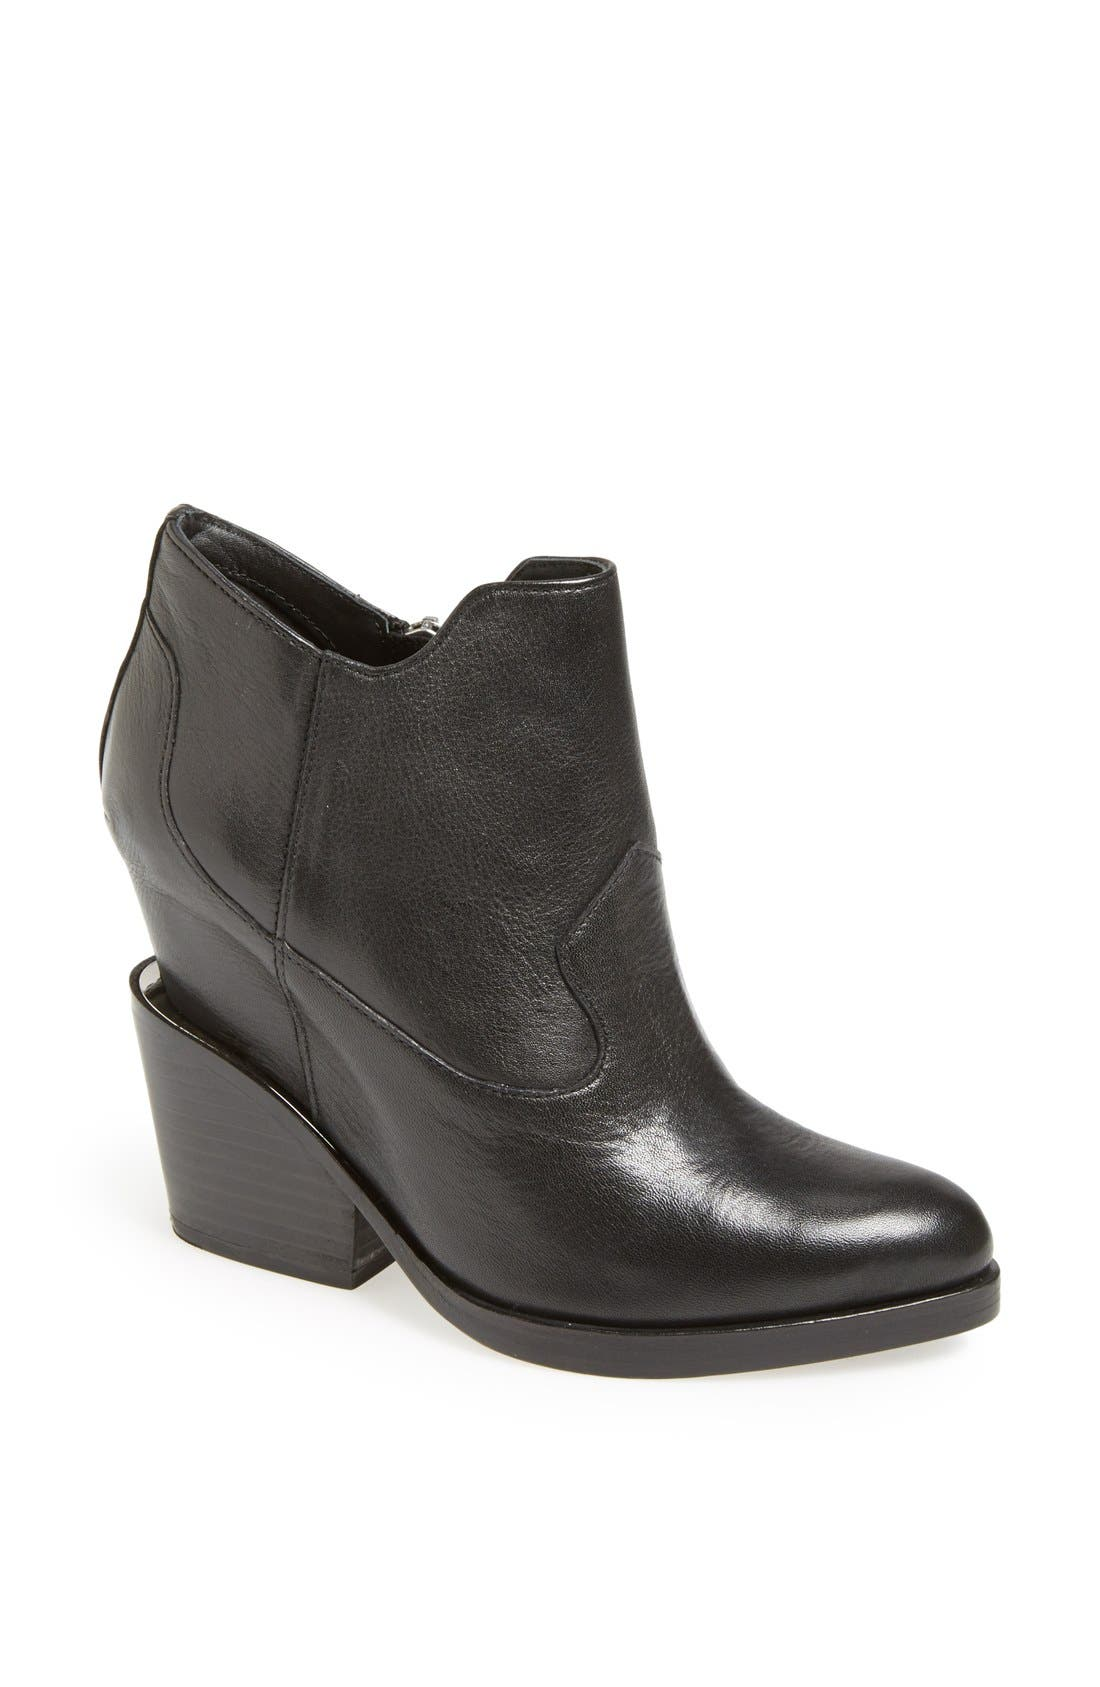 Alternate Image 1 Selected - Ash 'Lula' Leather Bootie